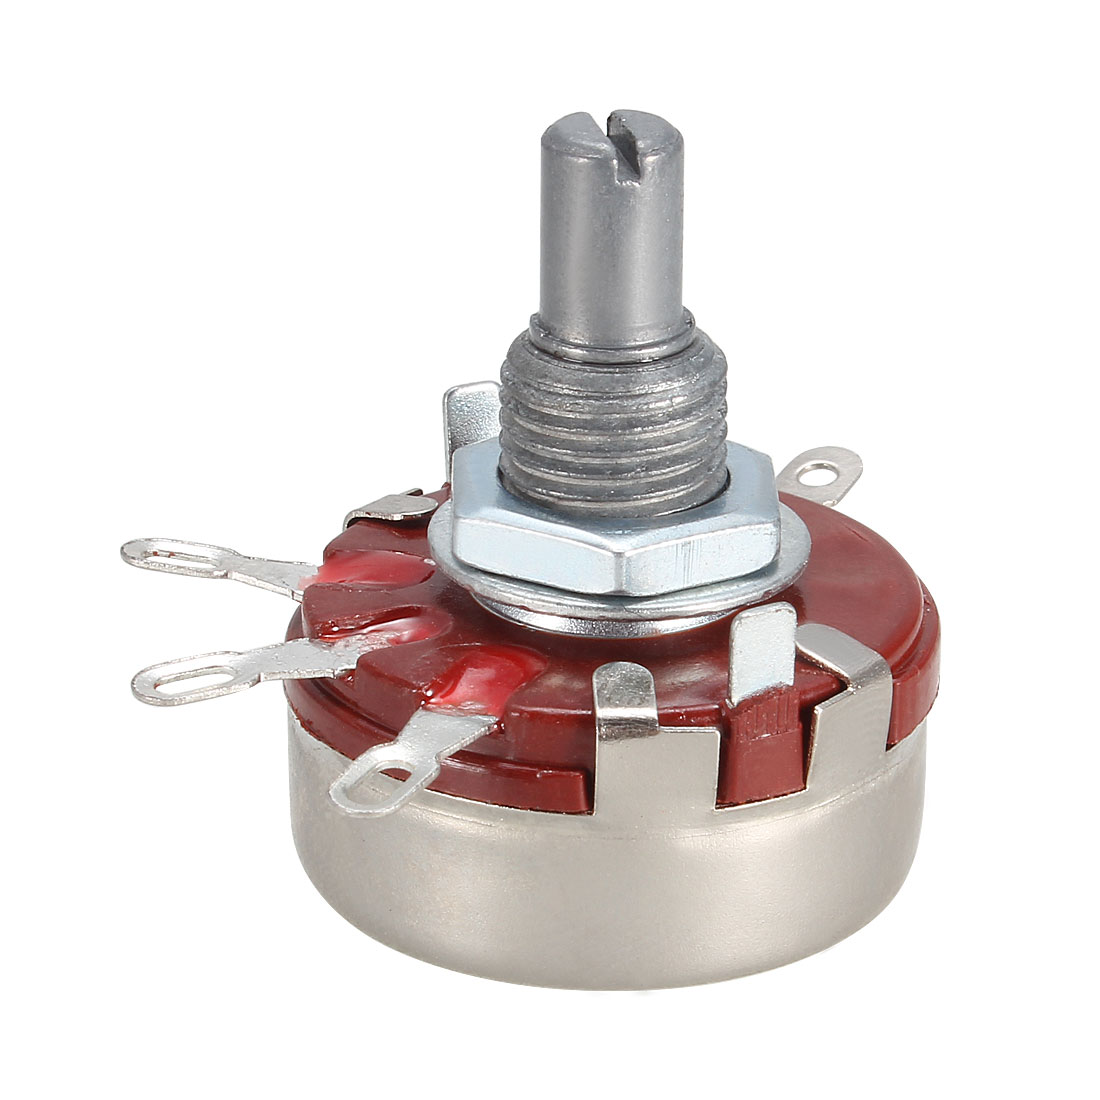 WTH118-1A 2W 220K ohm Single Turn Rotary Taper Carbon Potentiometer